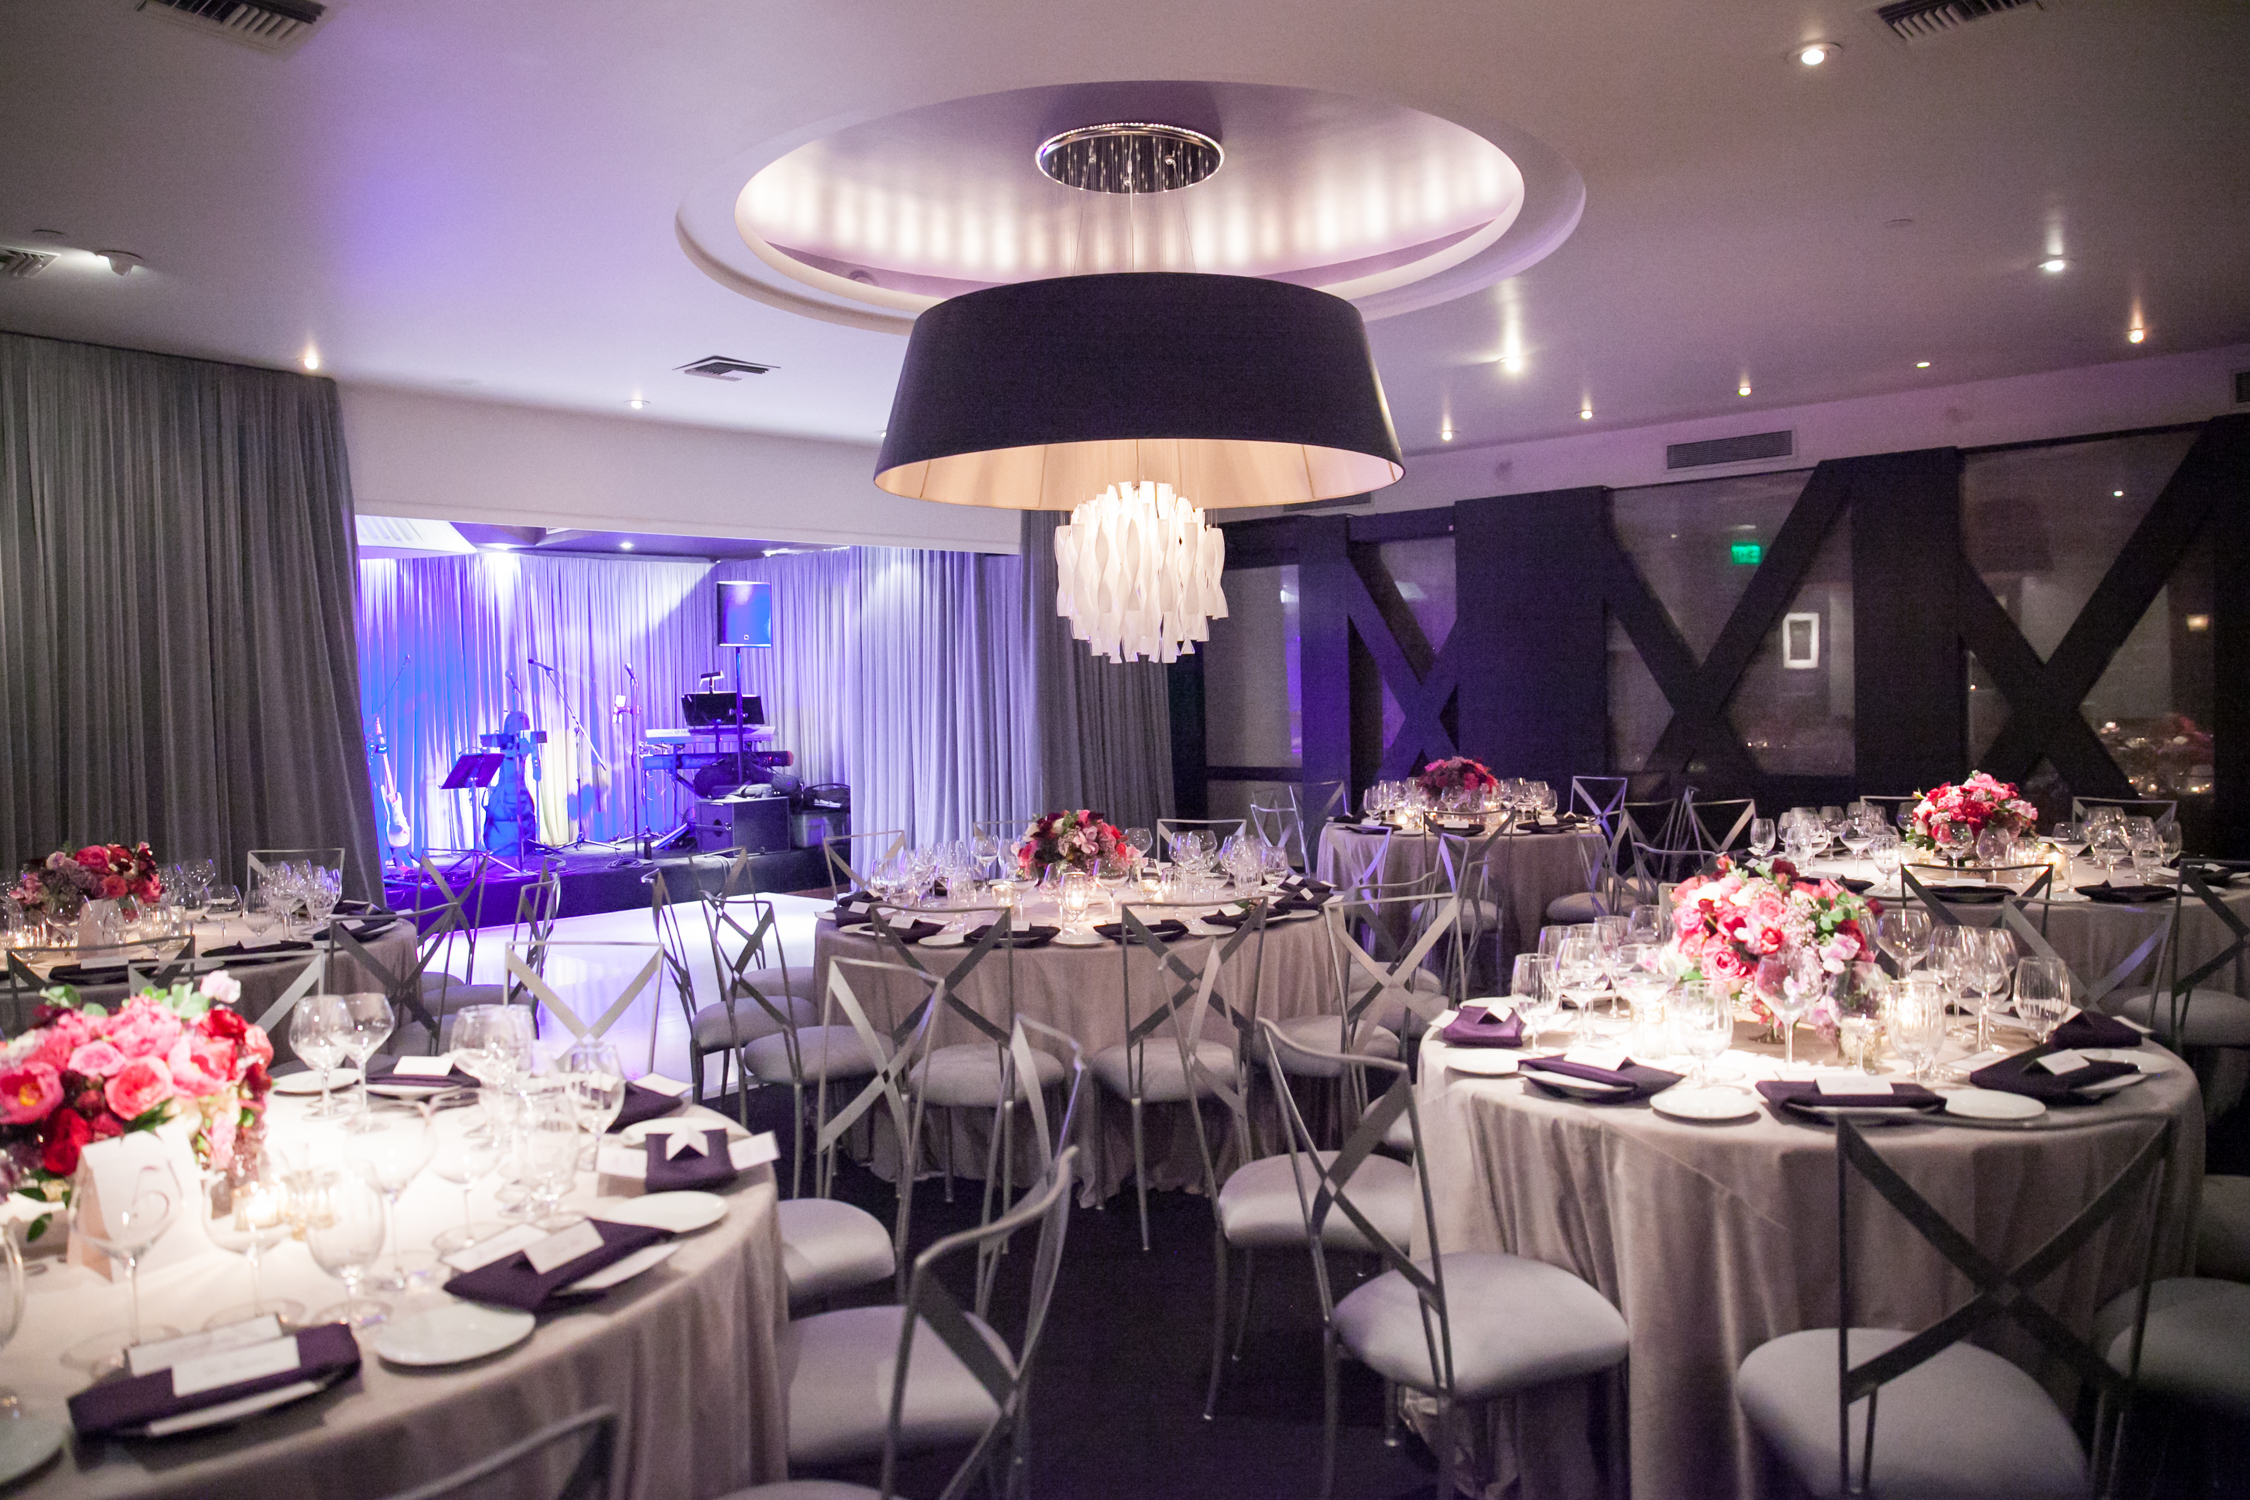 right-view-dining-room-magnolia-event-design-miki-and-sonja-melisse.jpg